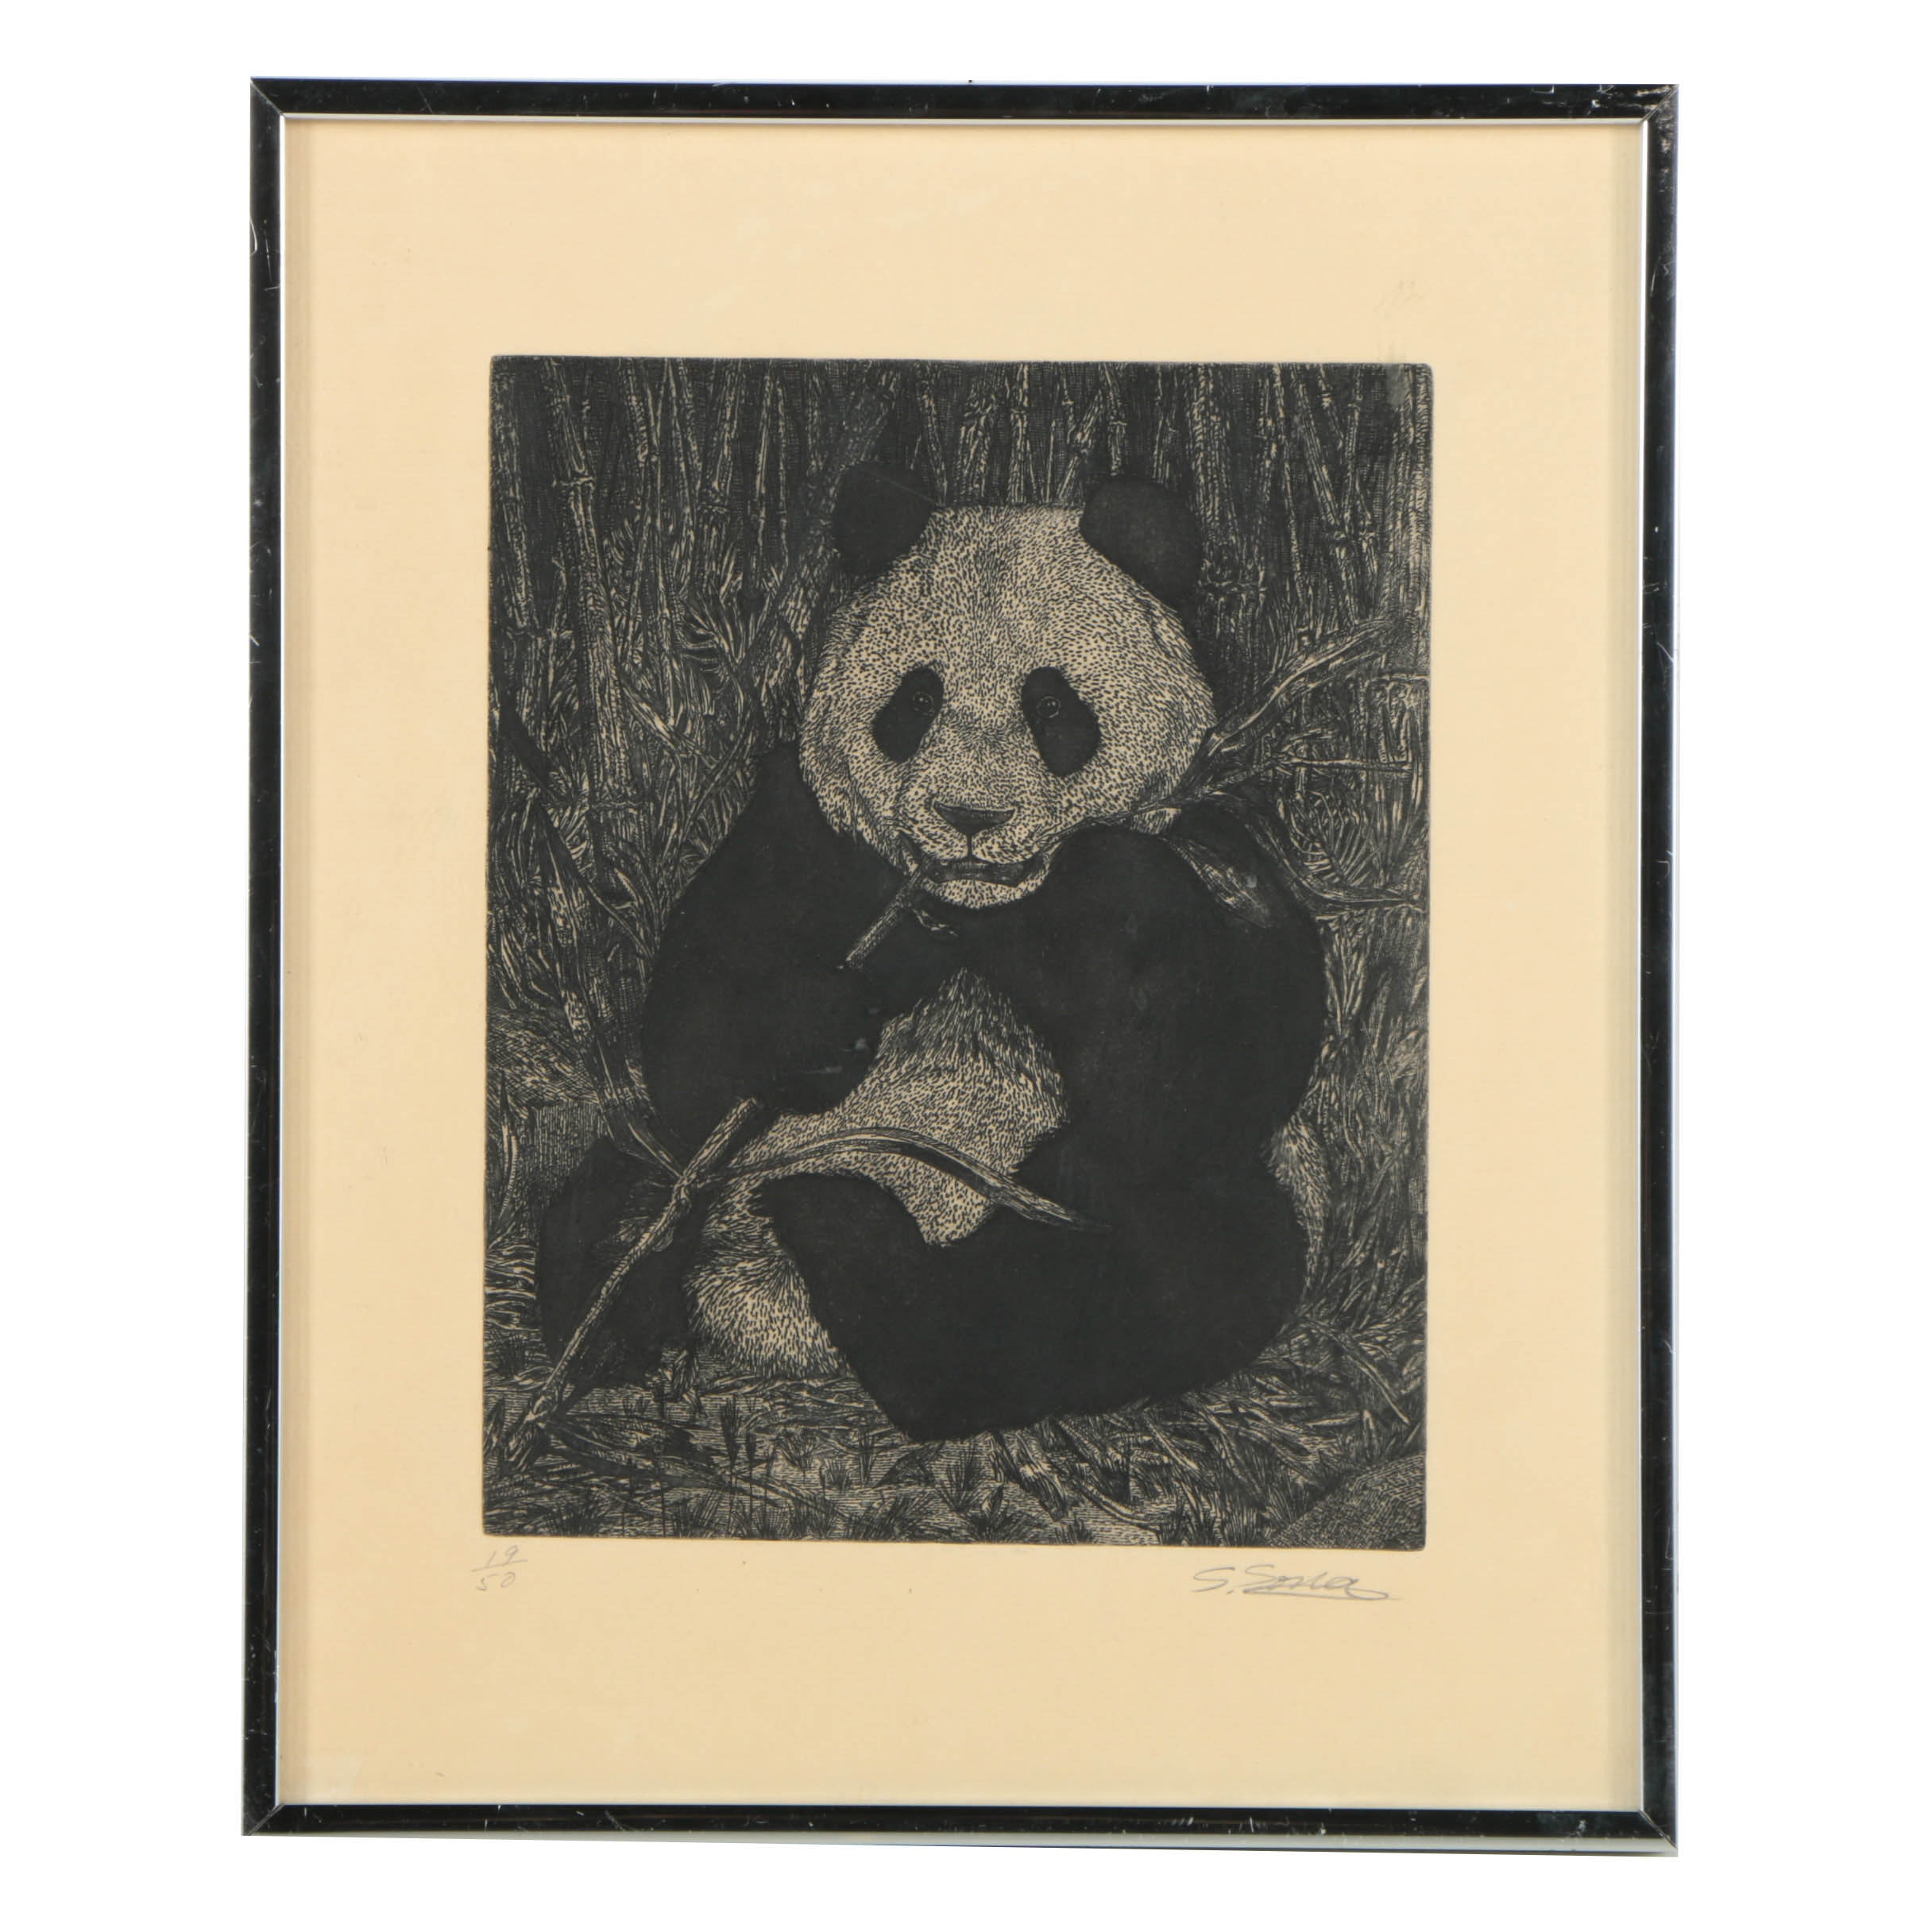 Limited Edition Etching on Paper of a Panda